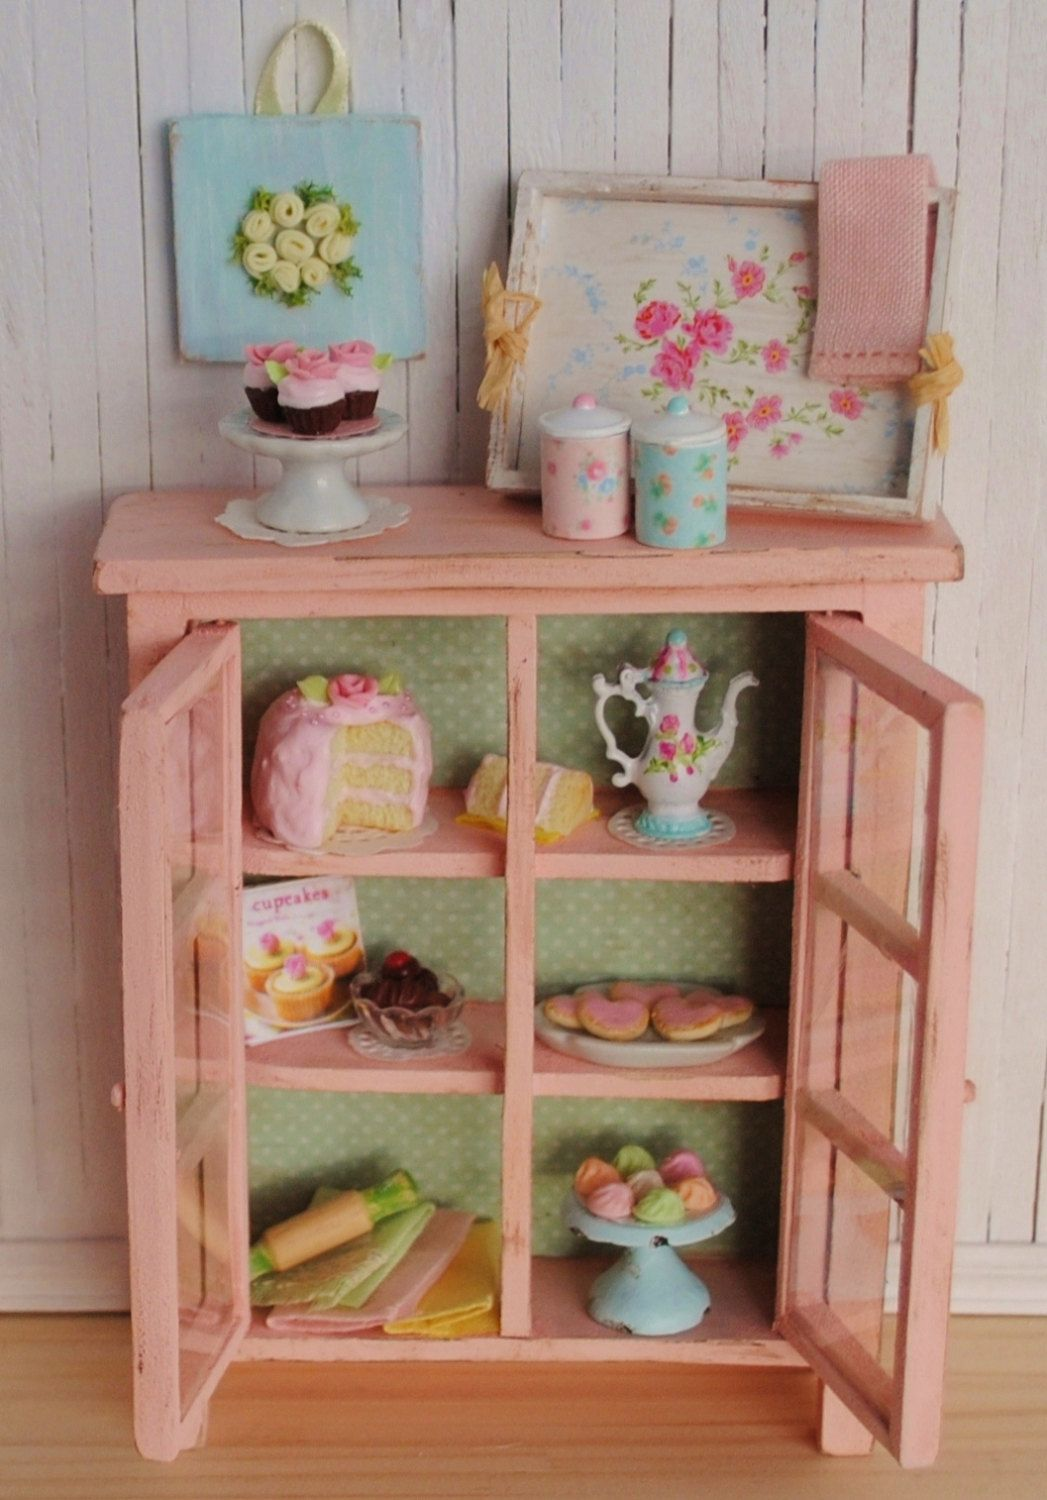 Miniature Shabby Chic Kitchen Cabinet Filled With Sweets